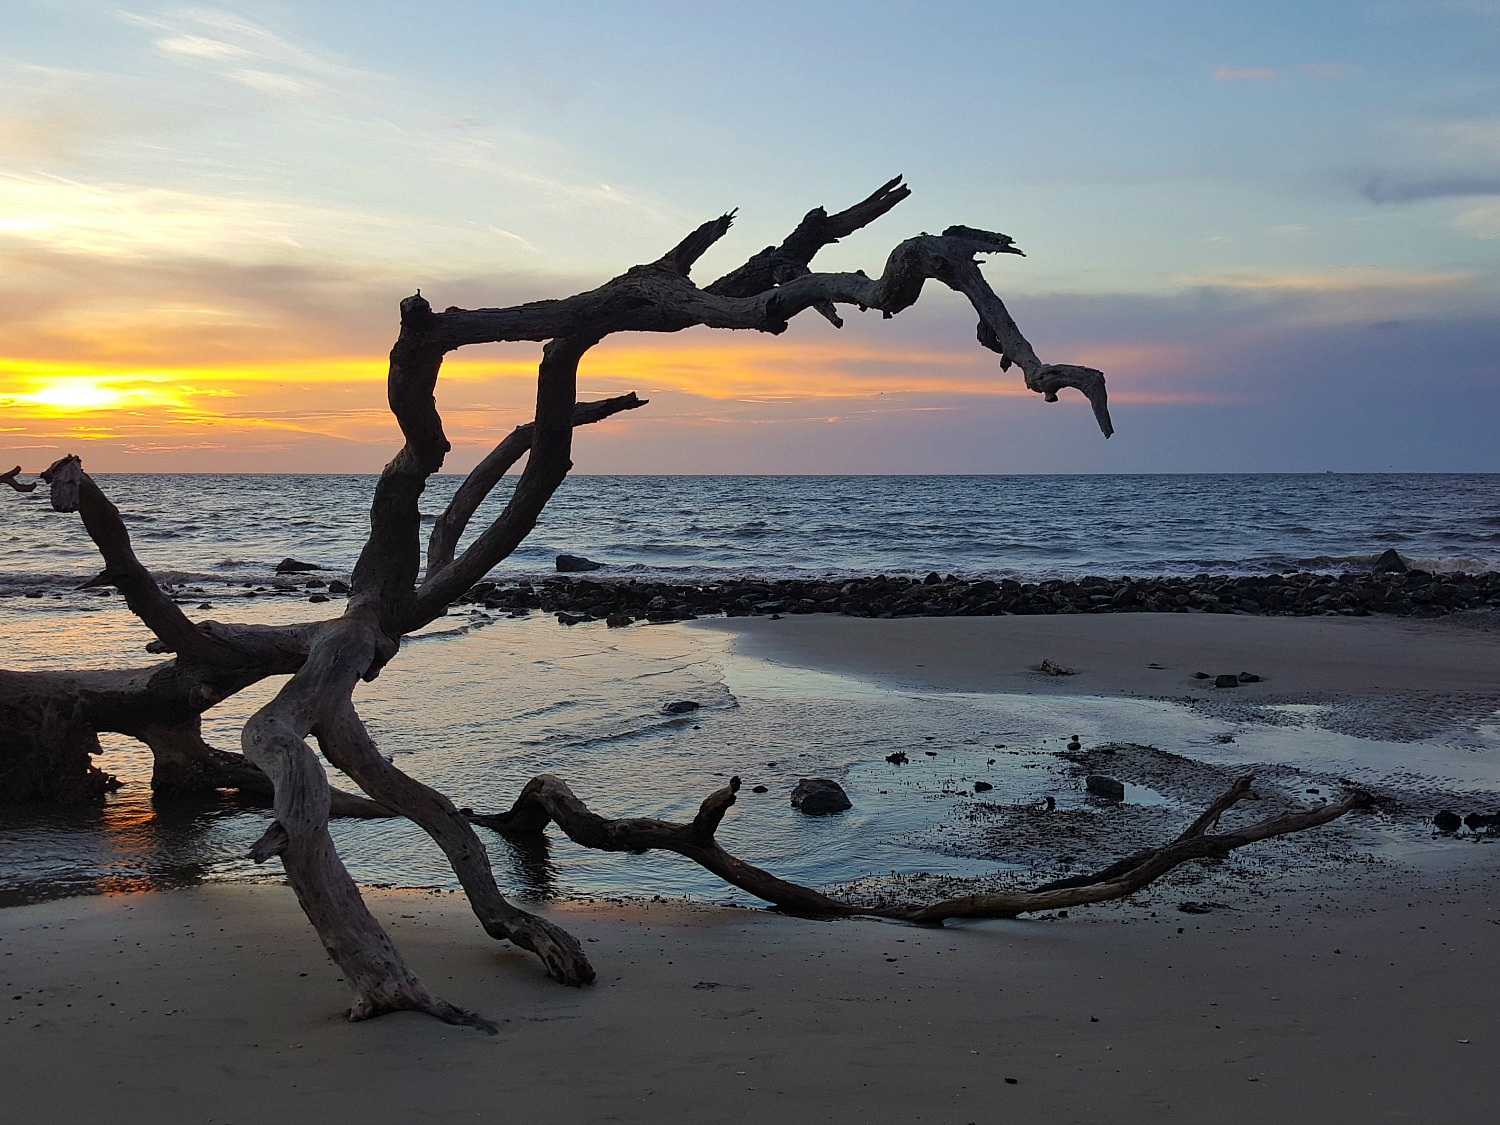 Boneyard Beach, Florida welcomes a new day.